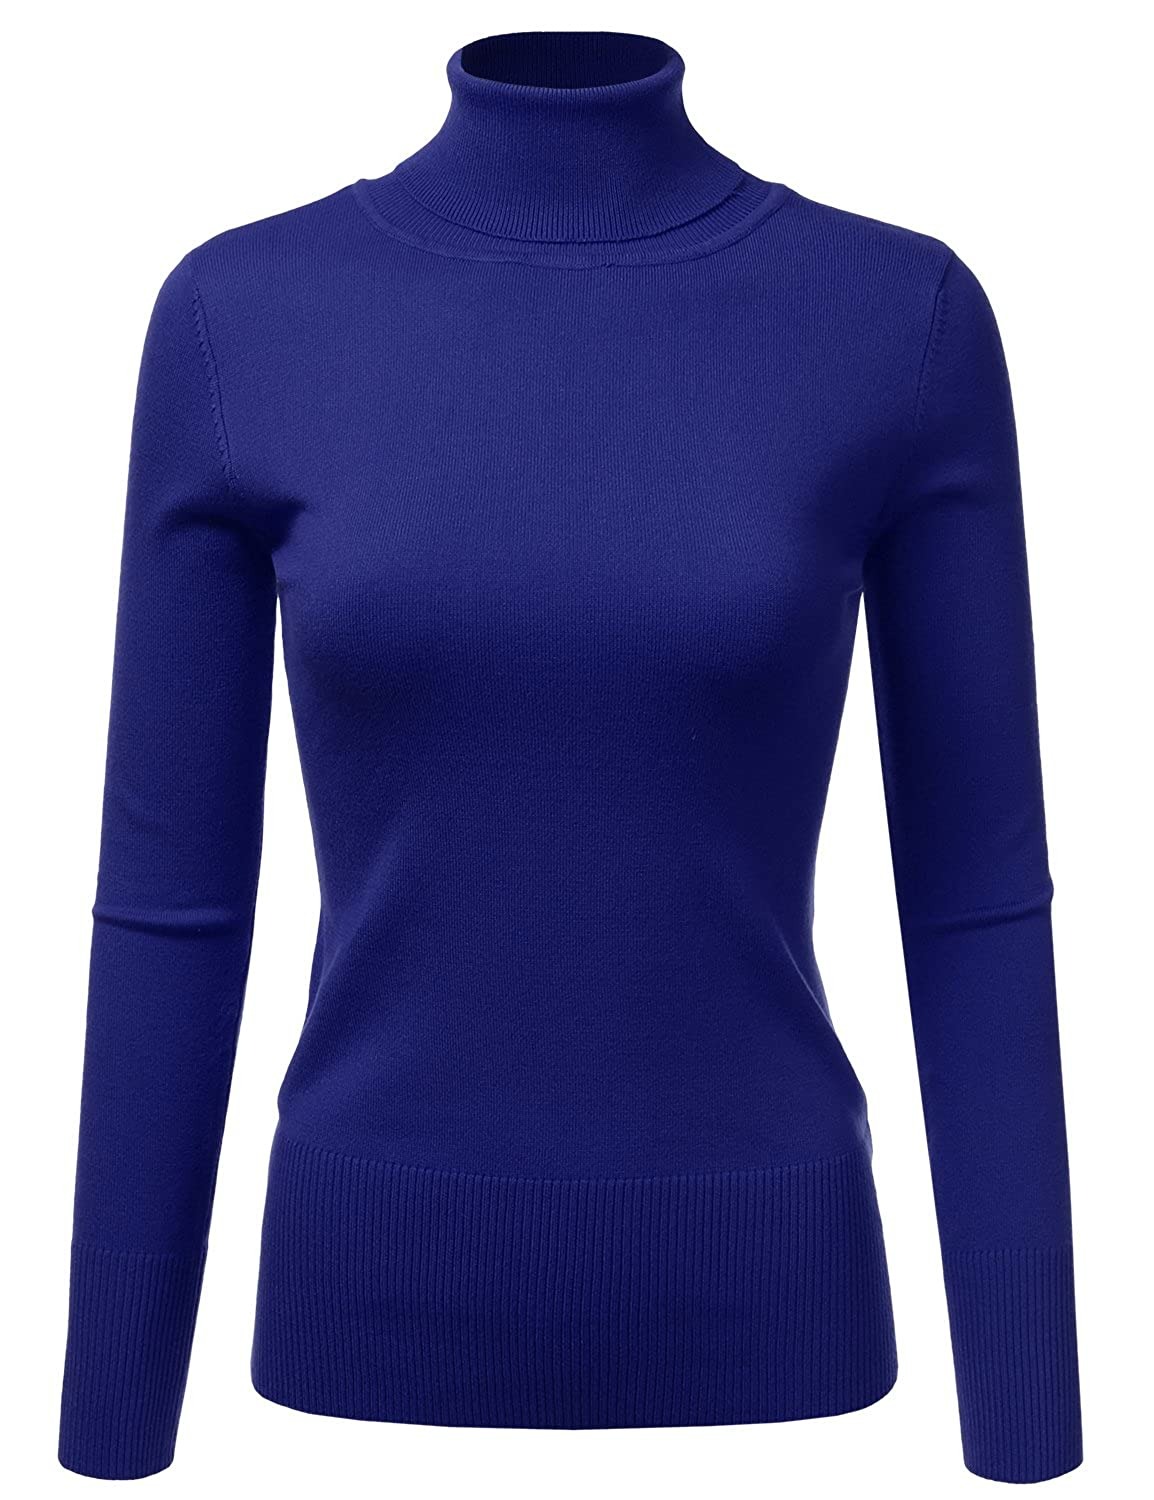 Doublju Basic Long Sleeve Ribbed Knit Turtleneck Sweater For Women